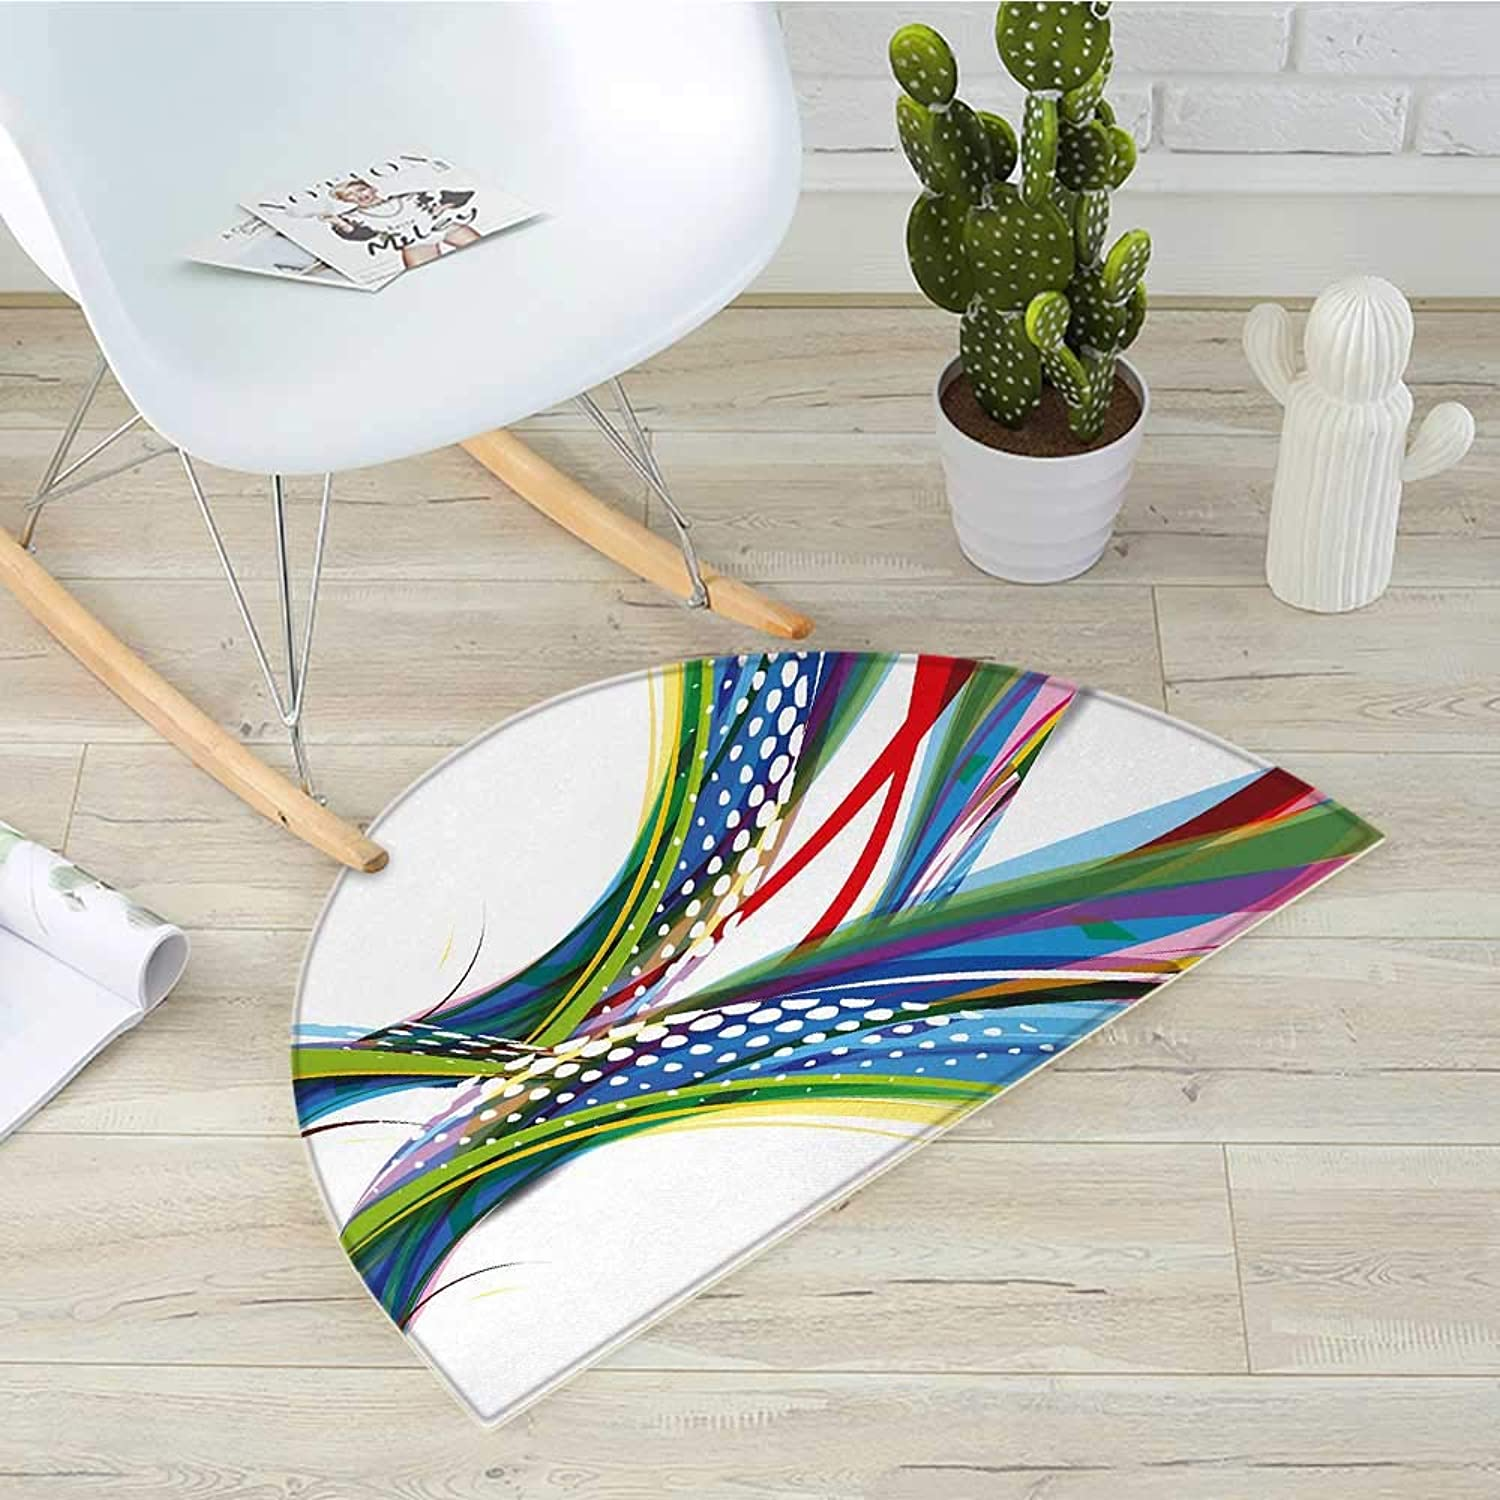 colorful Semicircle Doormat Active Sports Inspired Digital Wave Like Abstract and Ombre Vivid Modern Image Halfmoon doormats H 39.3  xD 59  Multicolor